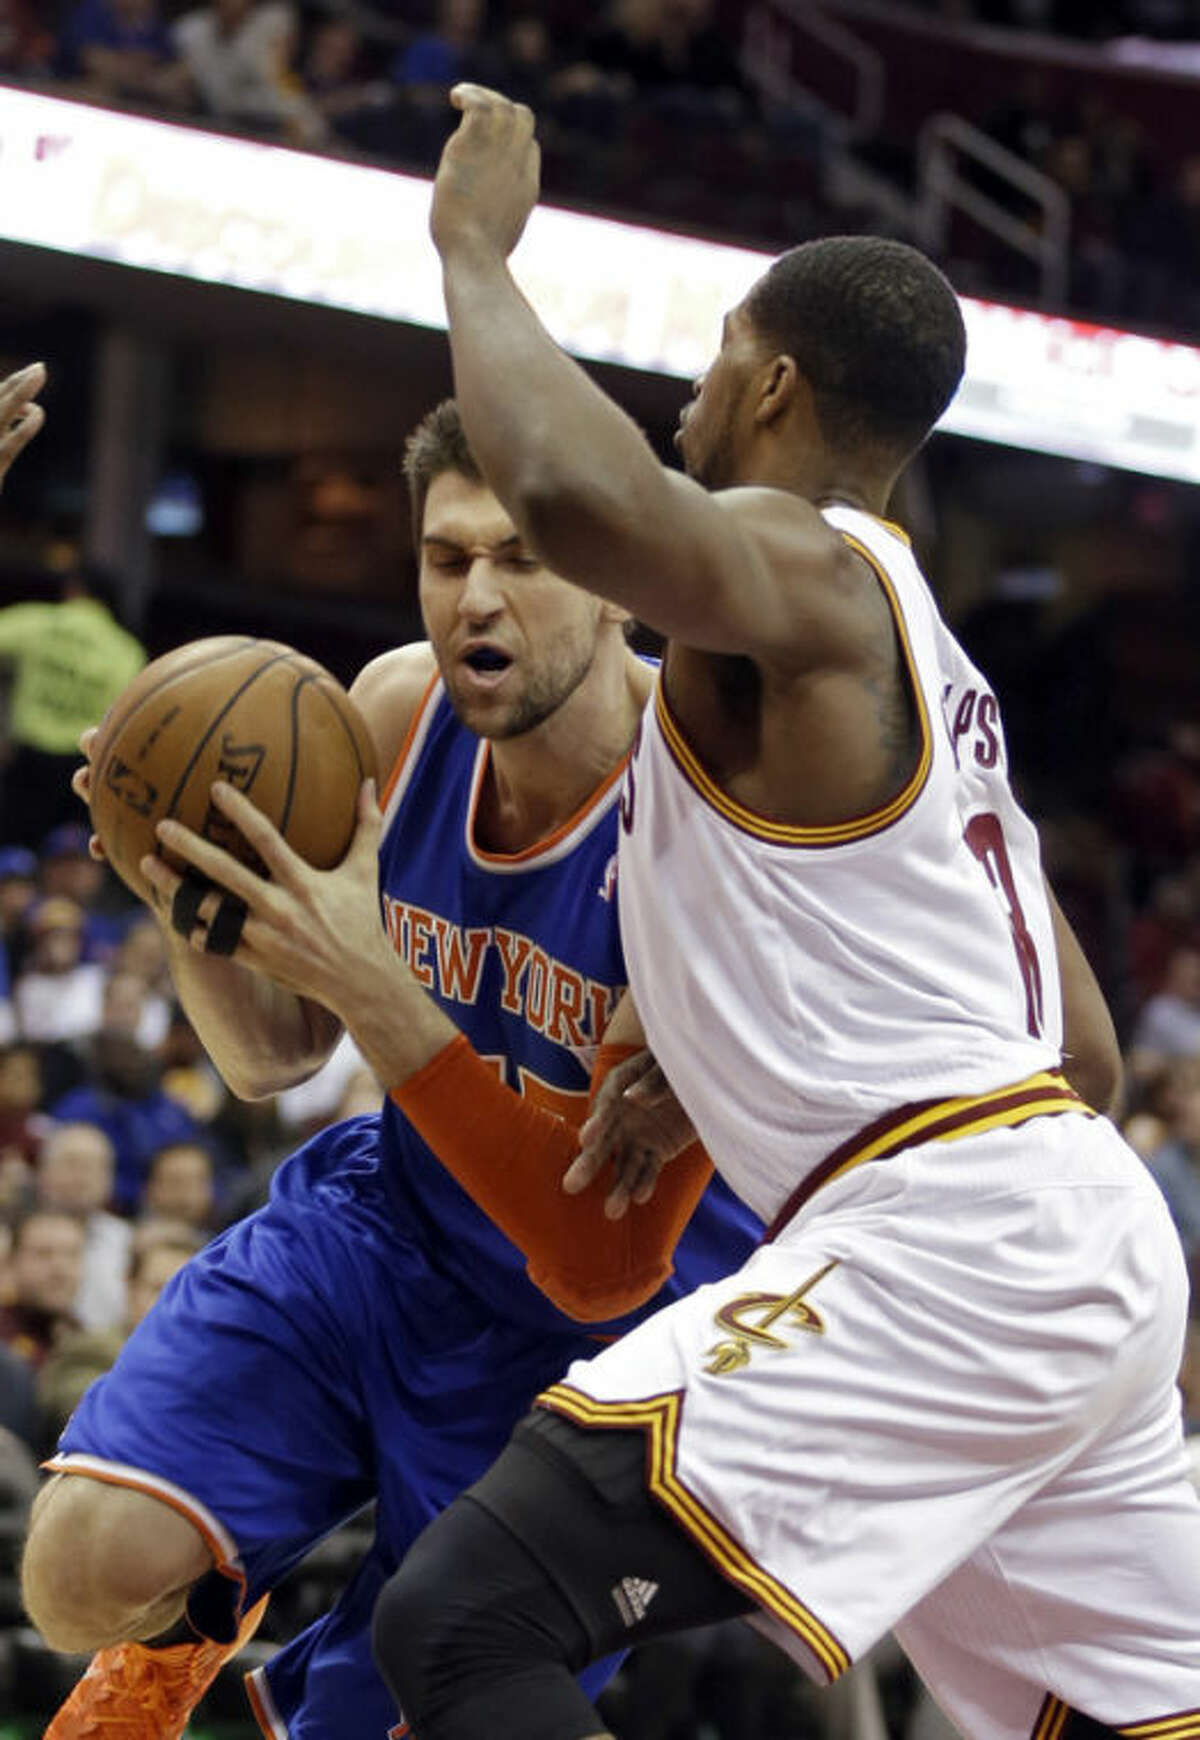 New York Knicks' Andrea Bargnani, left, from Italy, drives on Cleveland Cavaliers' Tristan Thompson in the first quarter of an NBA basketball game Tuesday, Dec. 10, 2013, in Cleveland. (AP Photo/Mark Duncan)